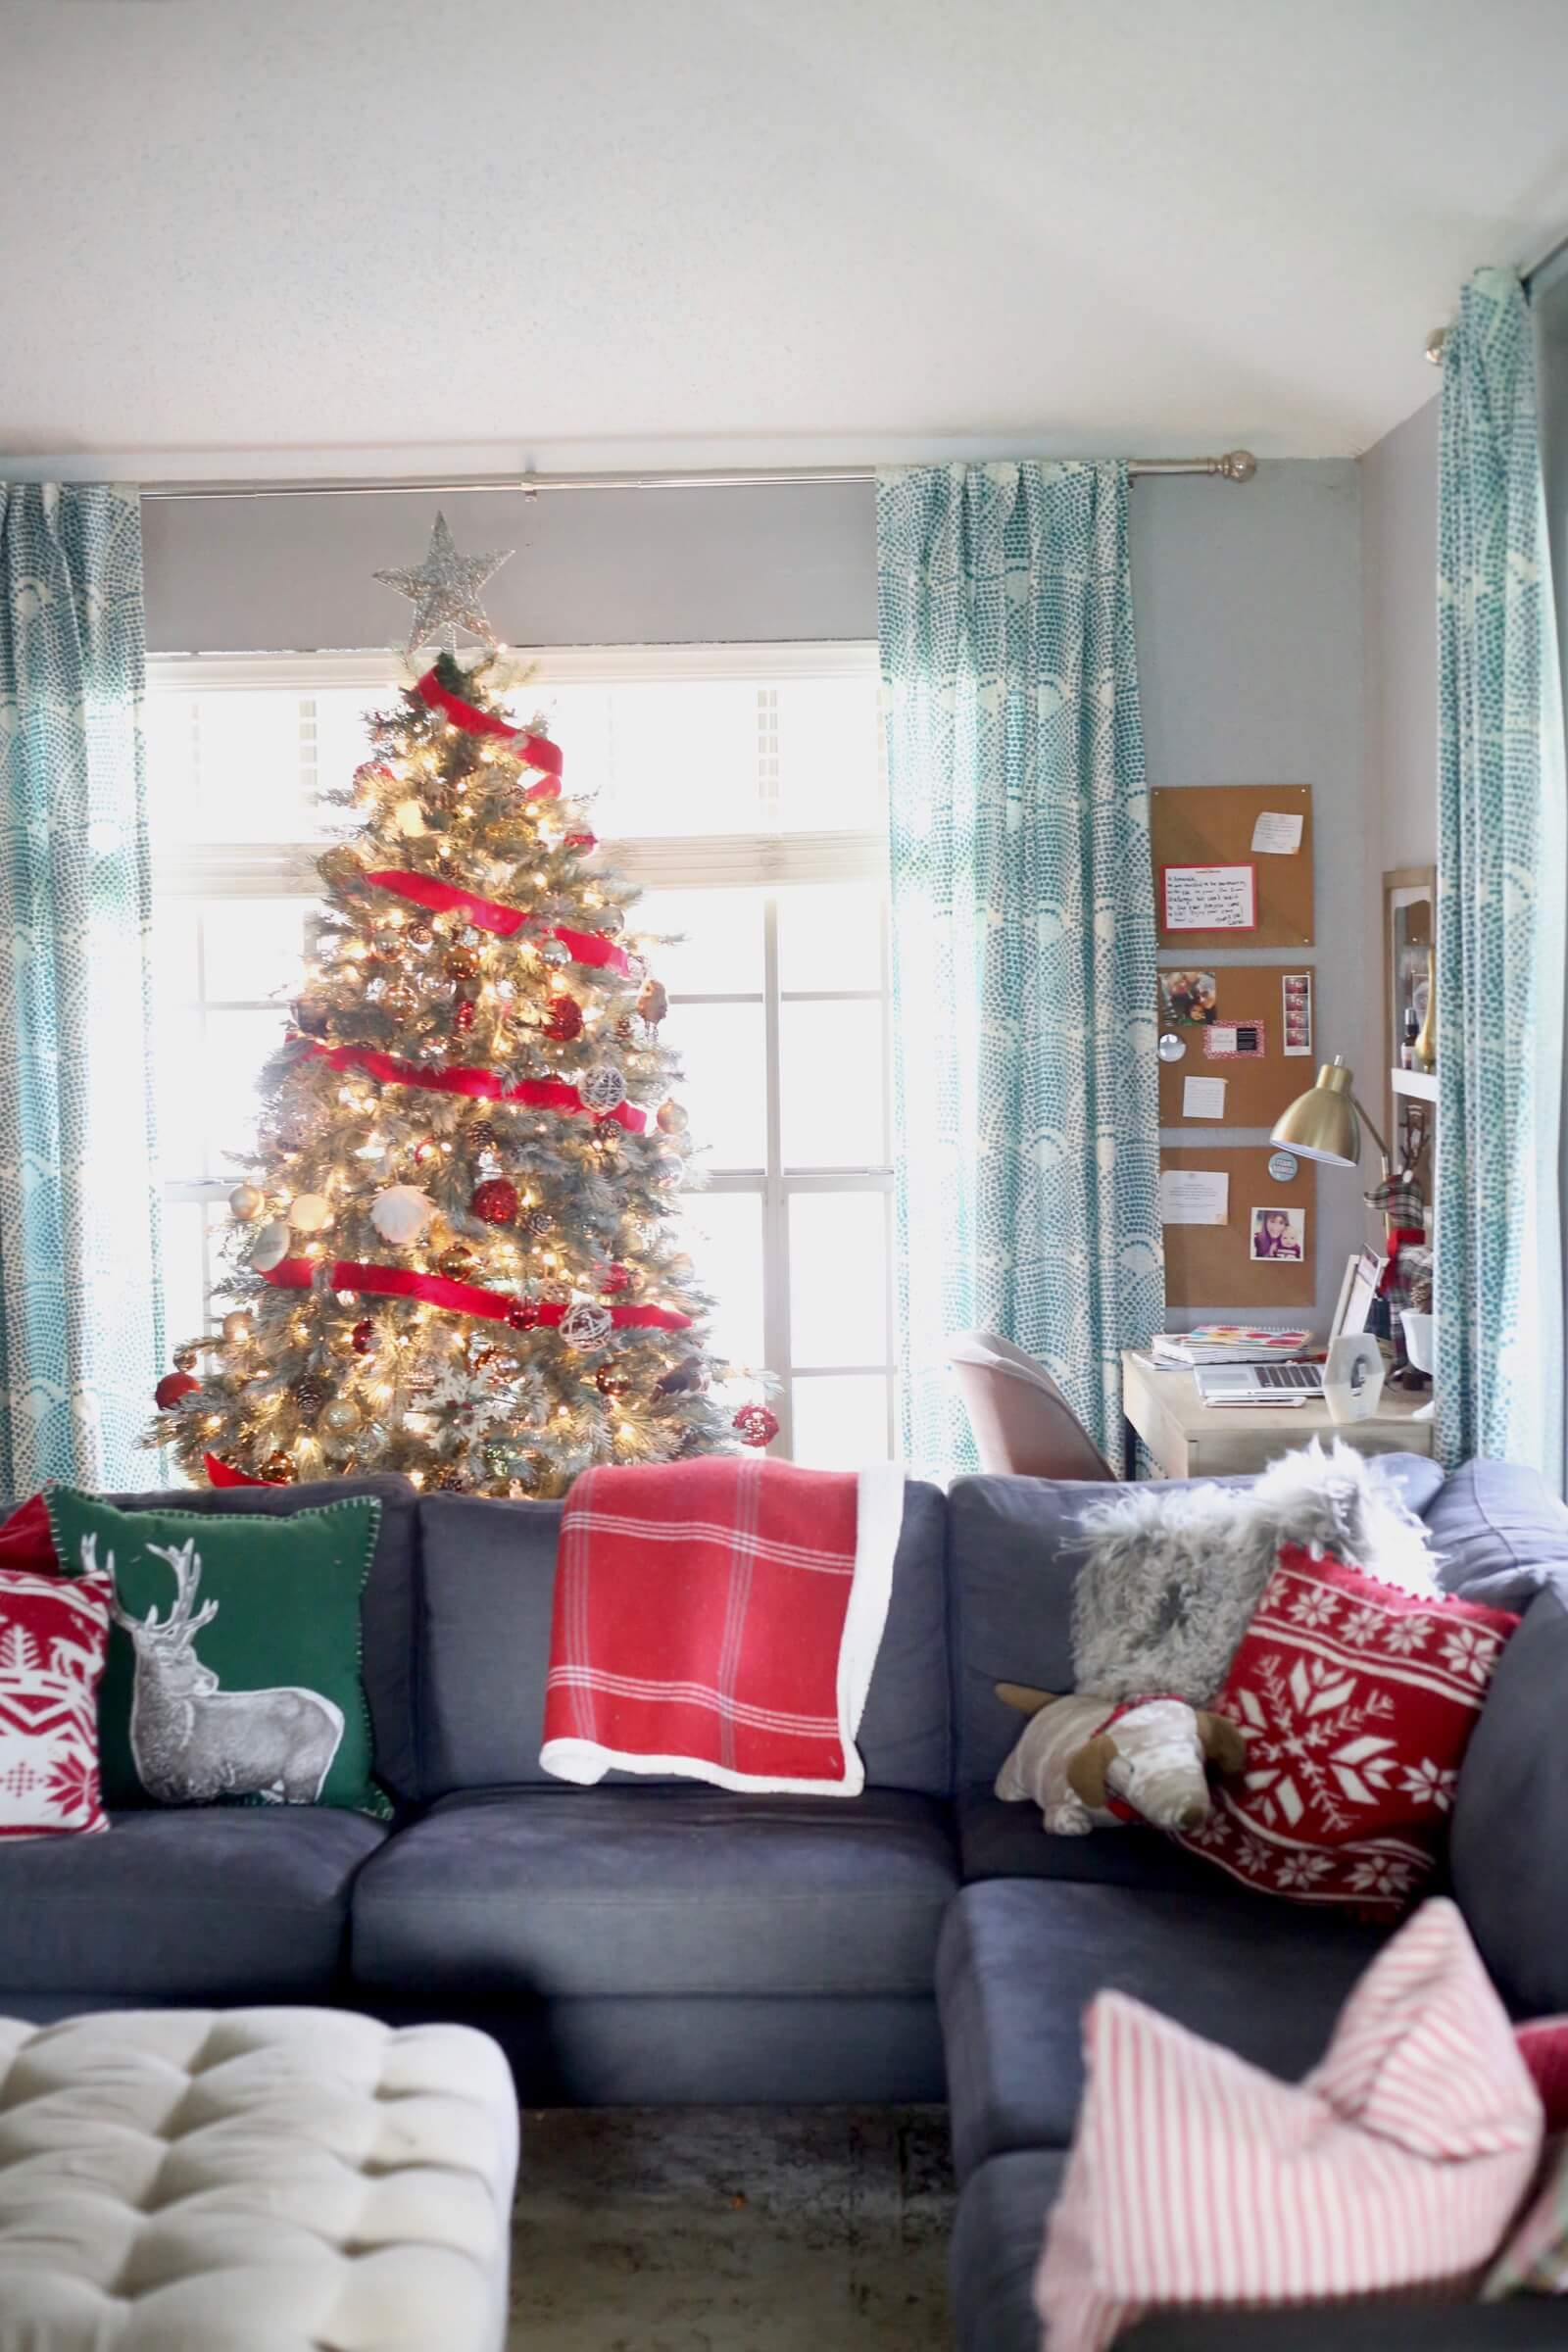 Christmas Living Room Decor Ideas thewowdecor (11)